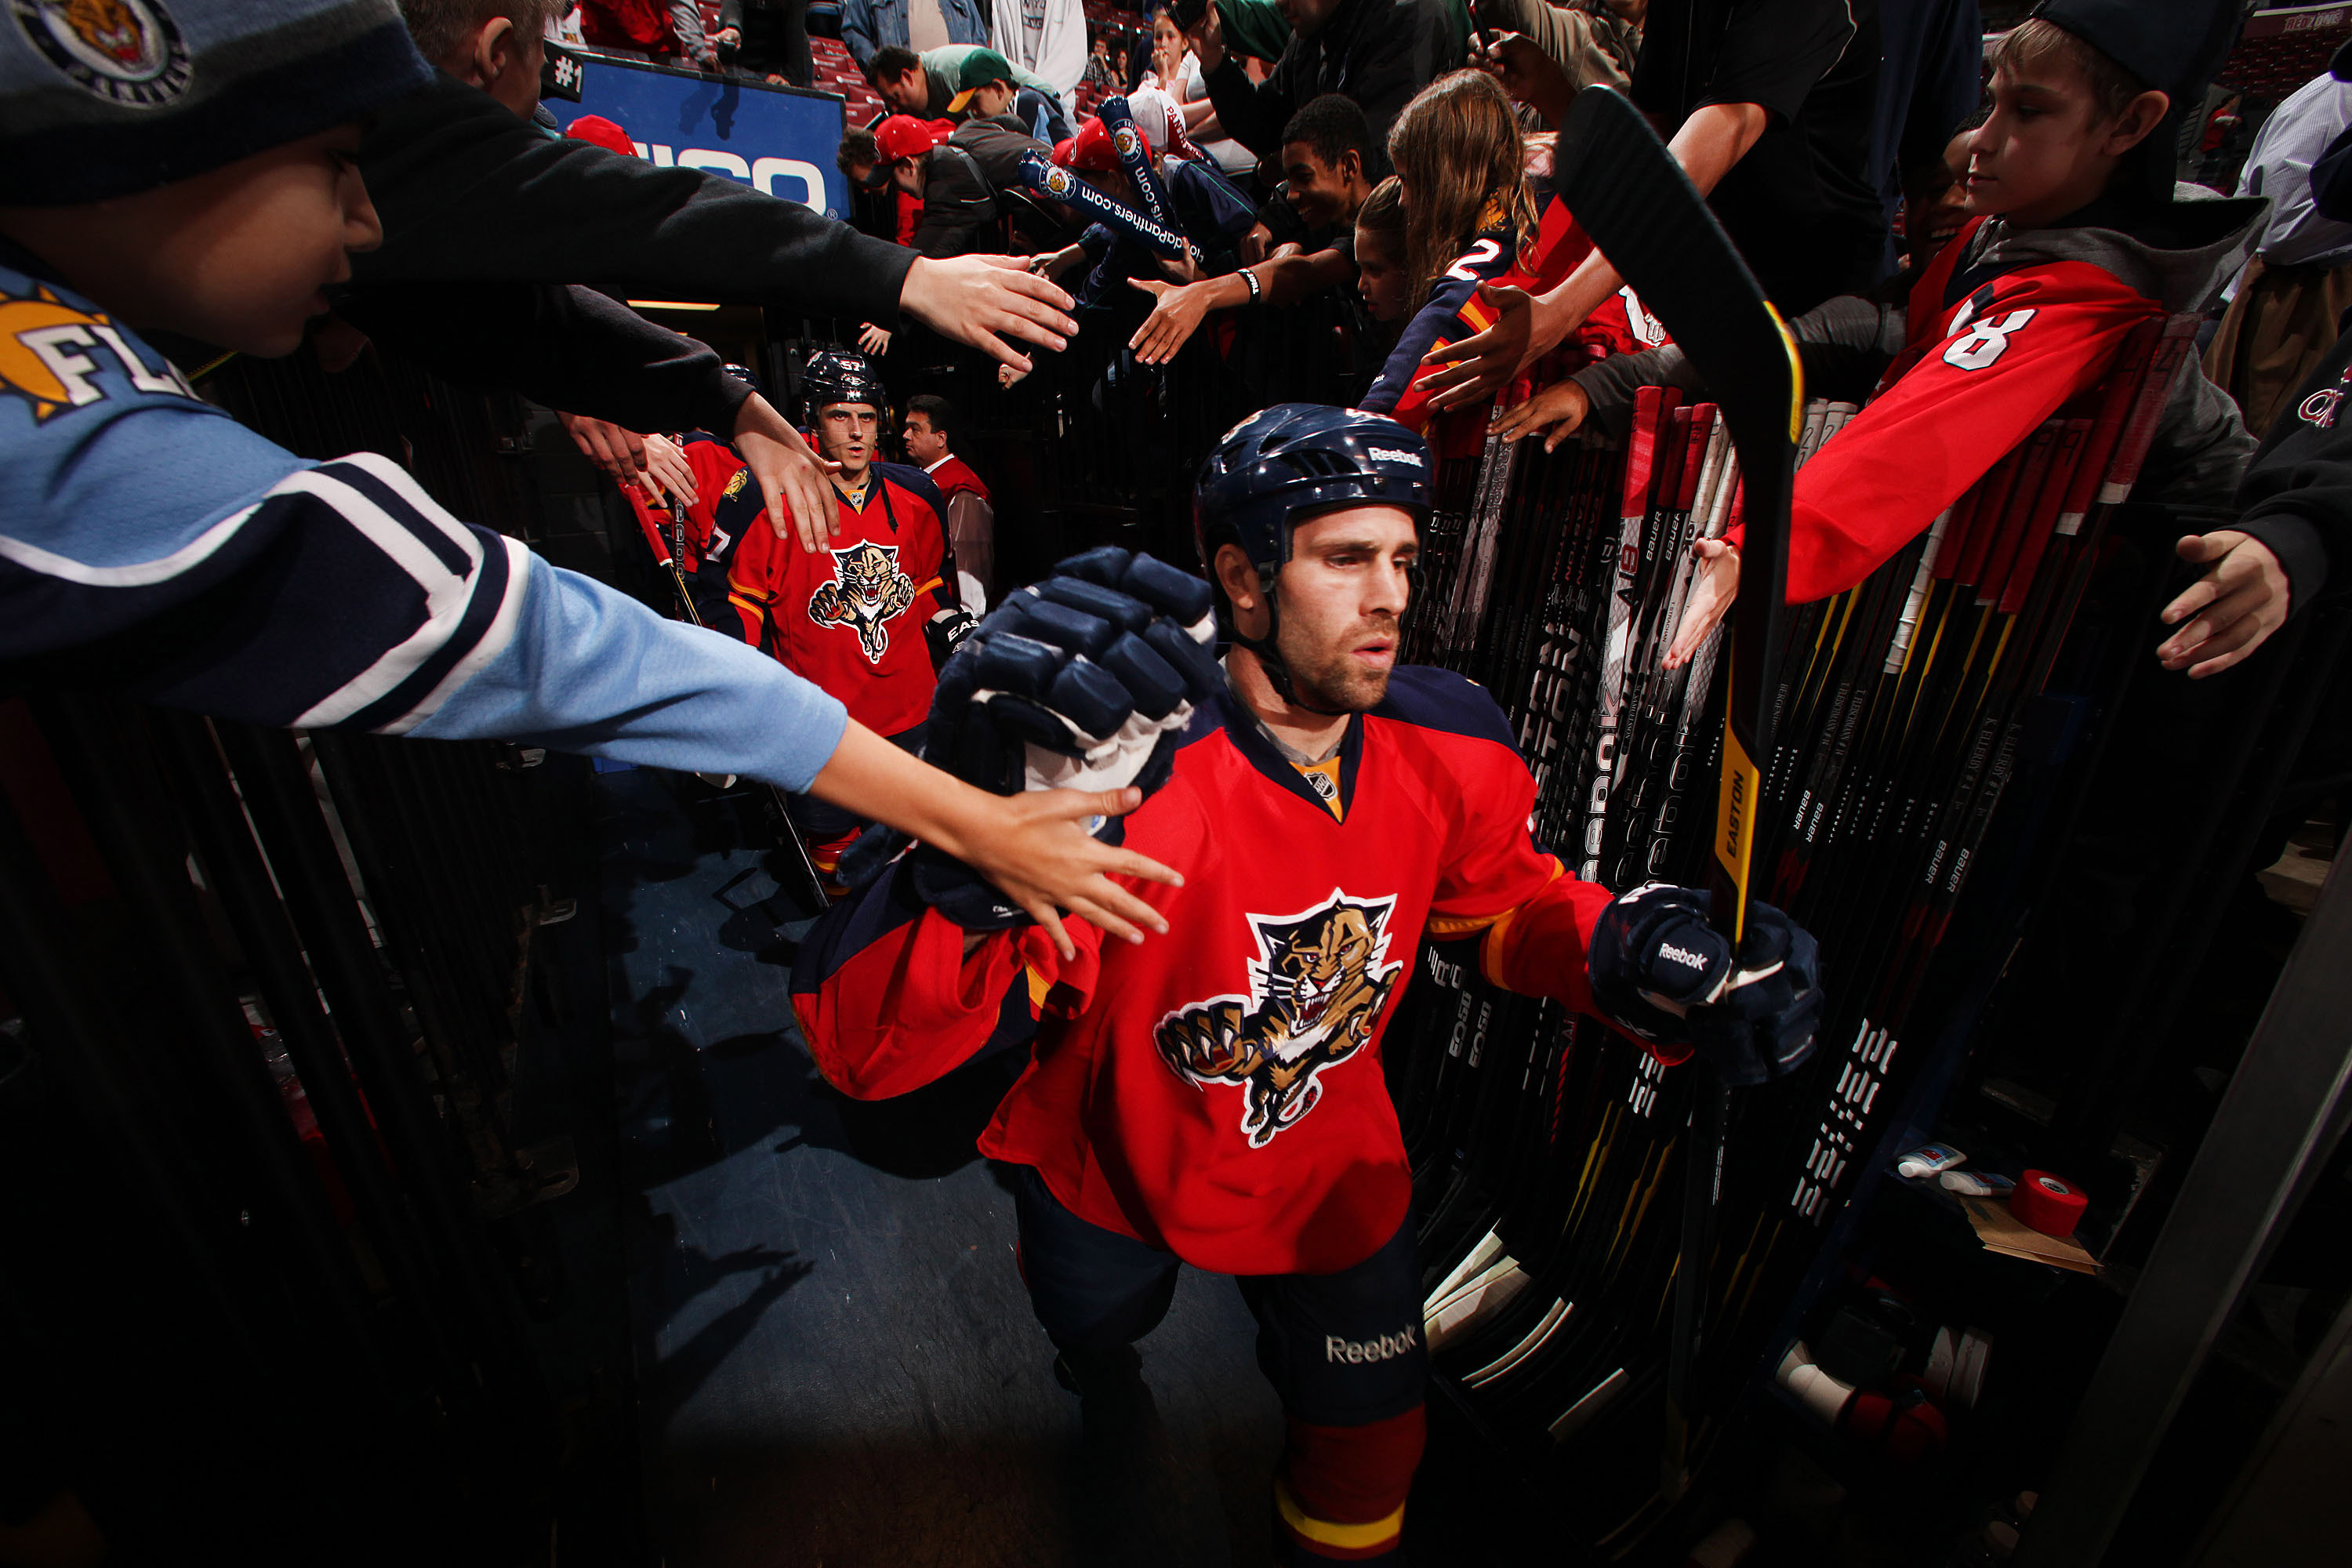 SUNRISE, FL - FEBRUARY 17: Mike Weaver #43 of the Florida Panthers is greeted by fans while heading out to the ice prior to the start of the game against the Washington Capitals and teammate Brooks Laich #21at the BankAtlantic Center on February 17, 2012 in Sunrise, Florida. (Photo by Eliot J. Schechter/NHLI via Getty Images)